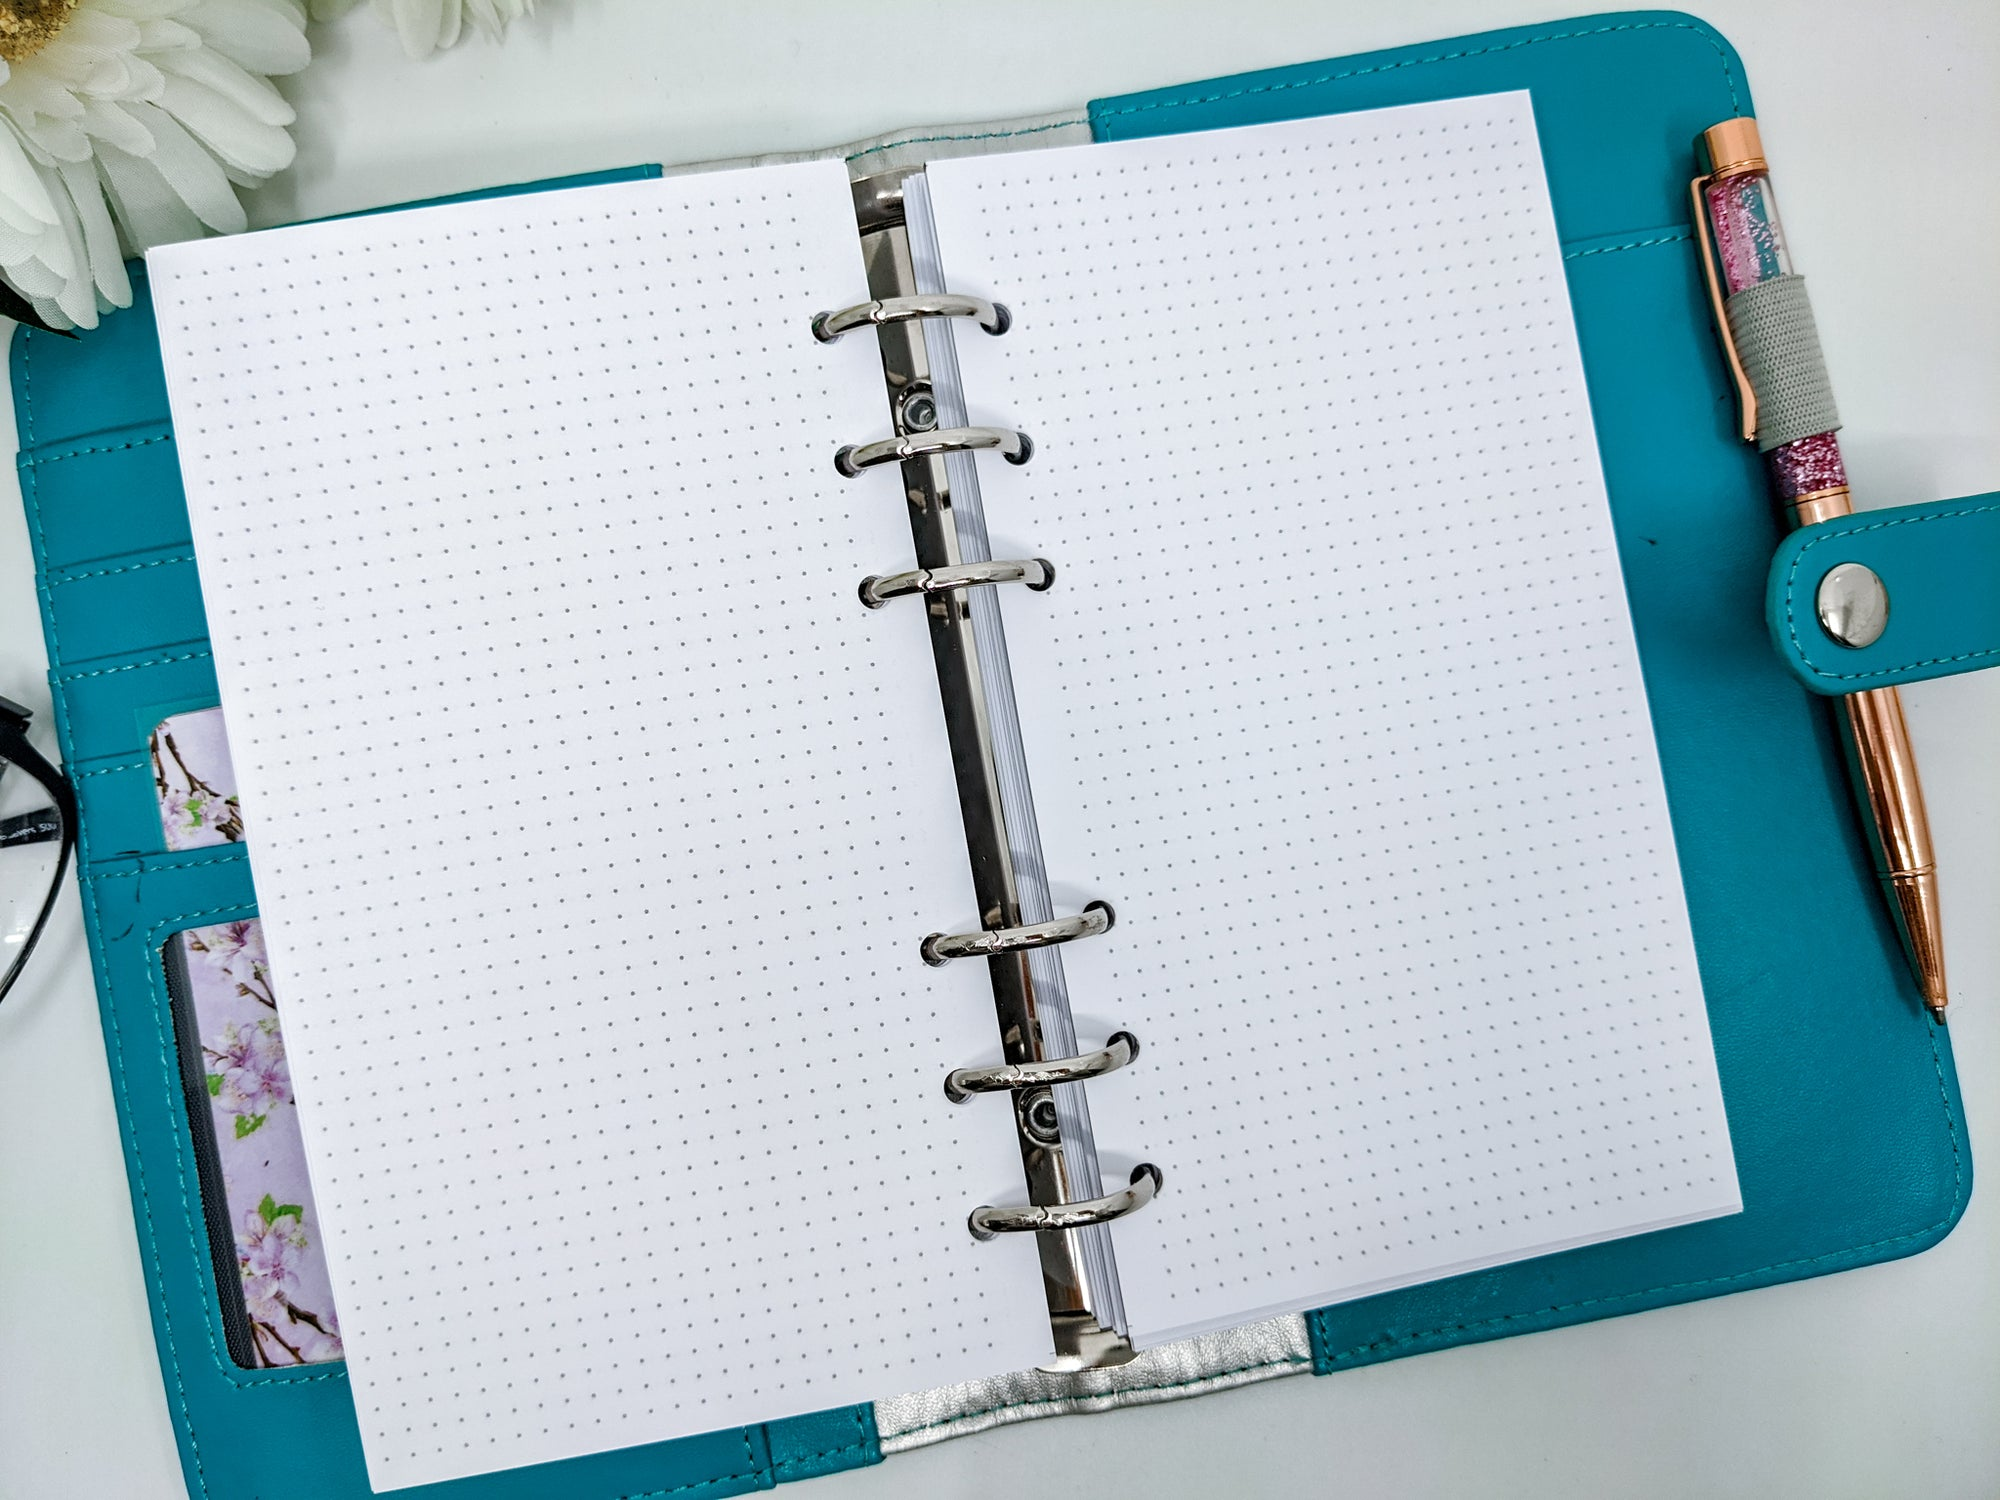 Personal size dot grid paper